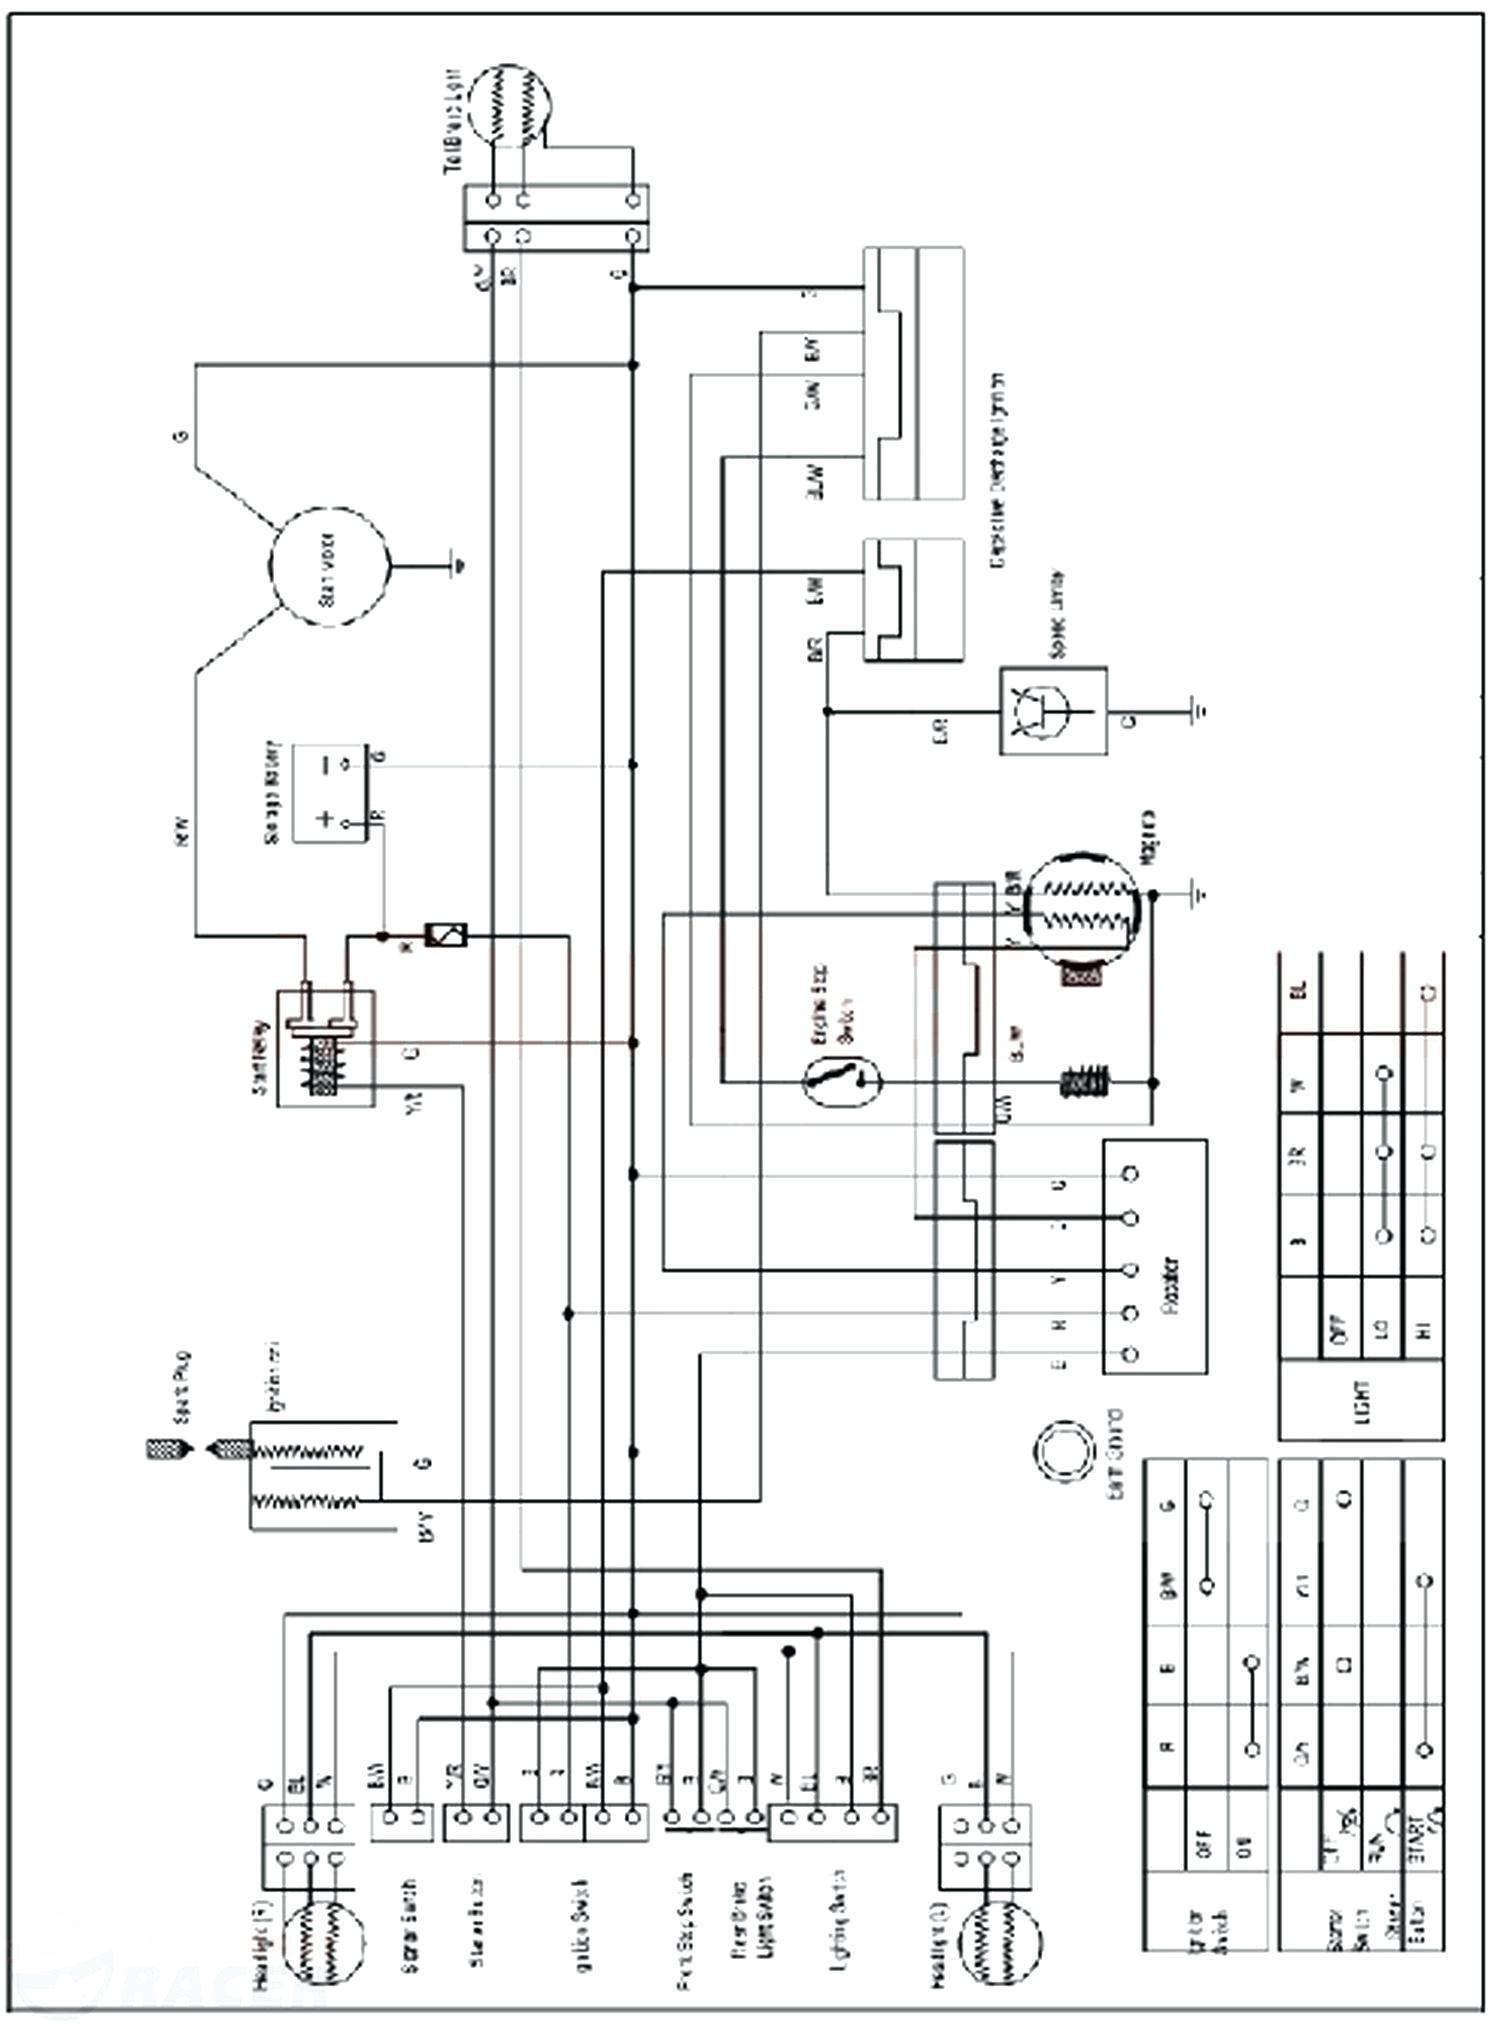 Tao Tao 110 Atv Parts Diagram